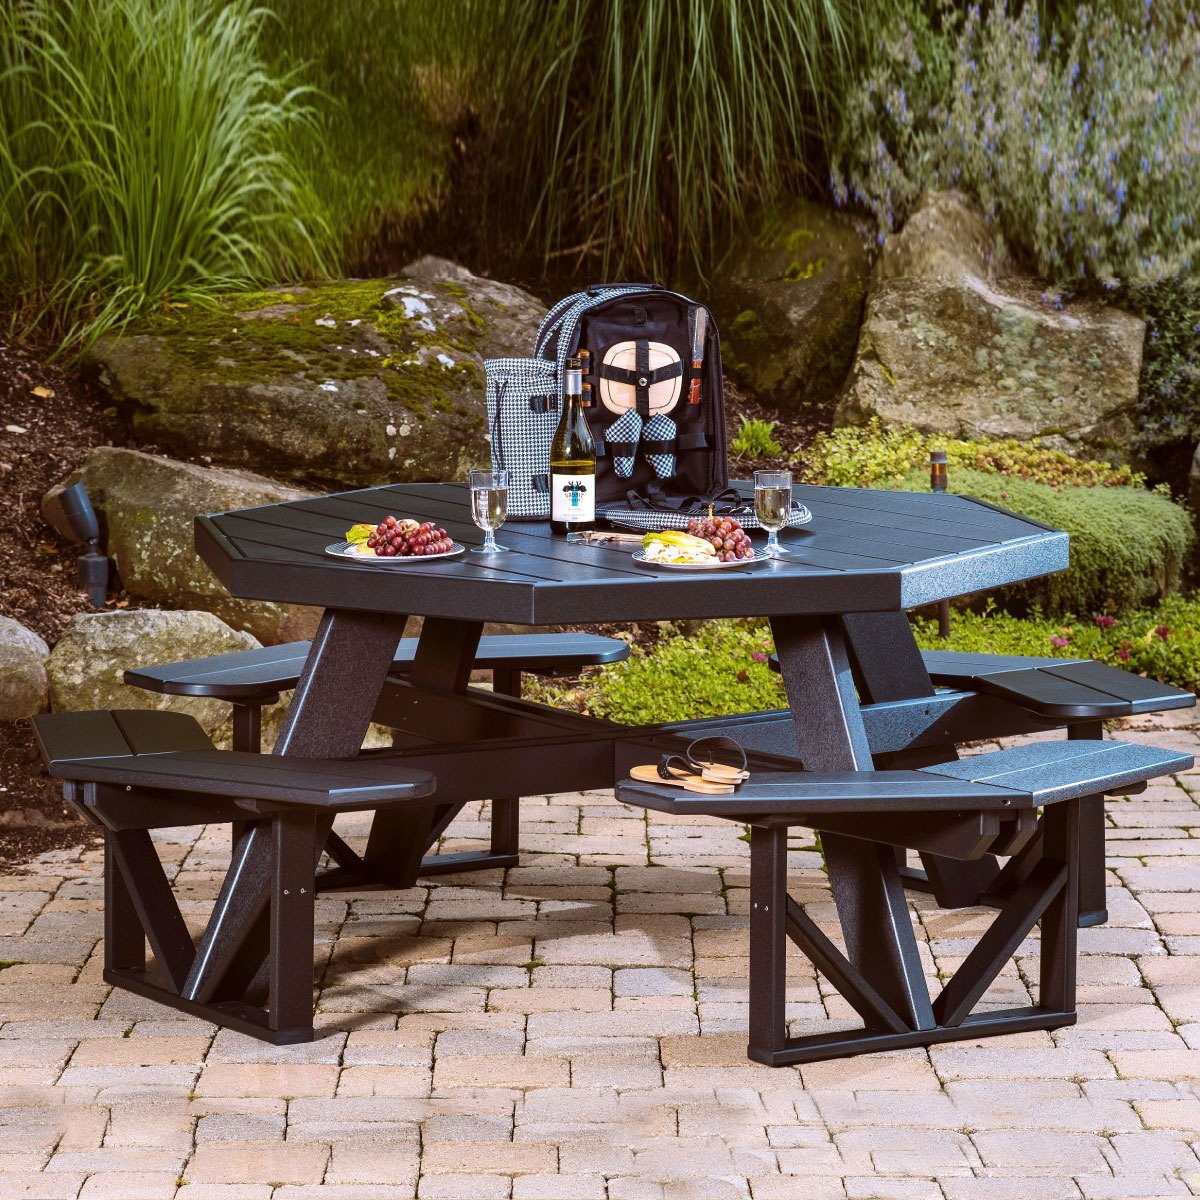 luxury recycled plastic patio furniture